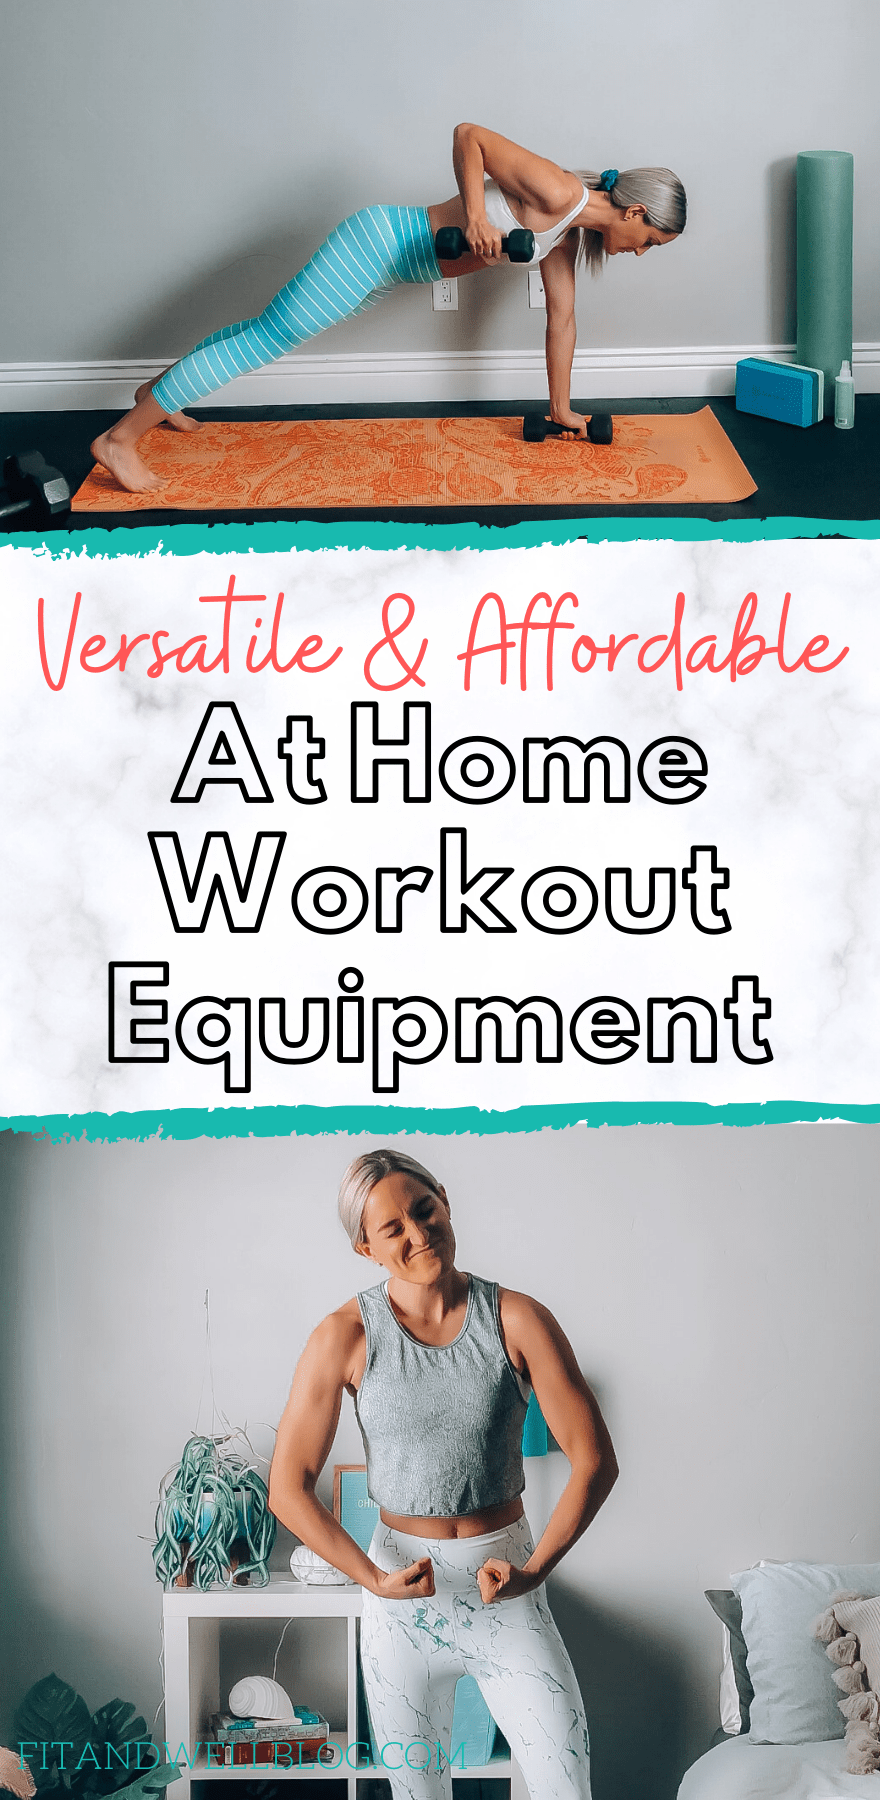 Versatile and affordable at home workout equipment ideas